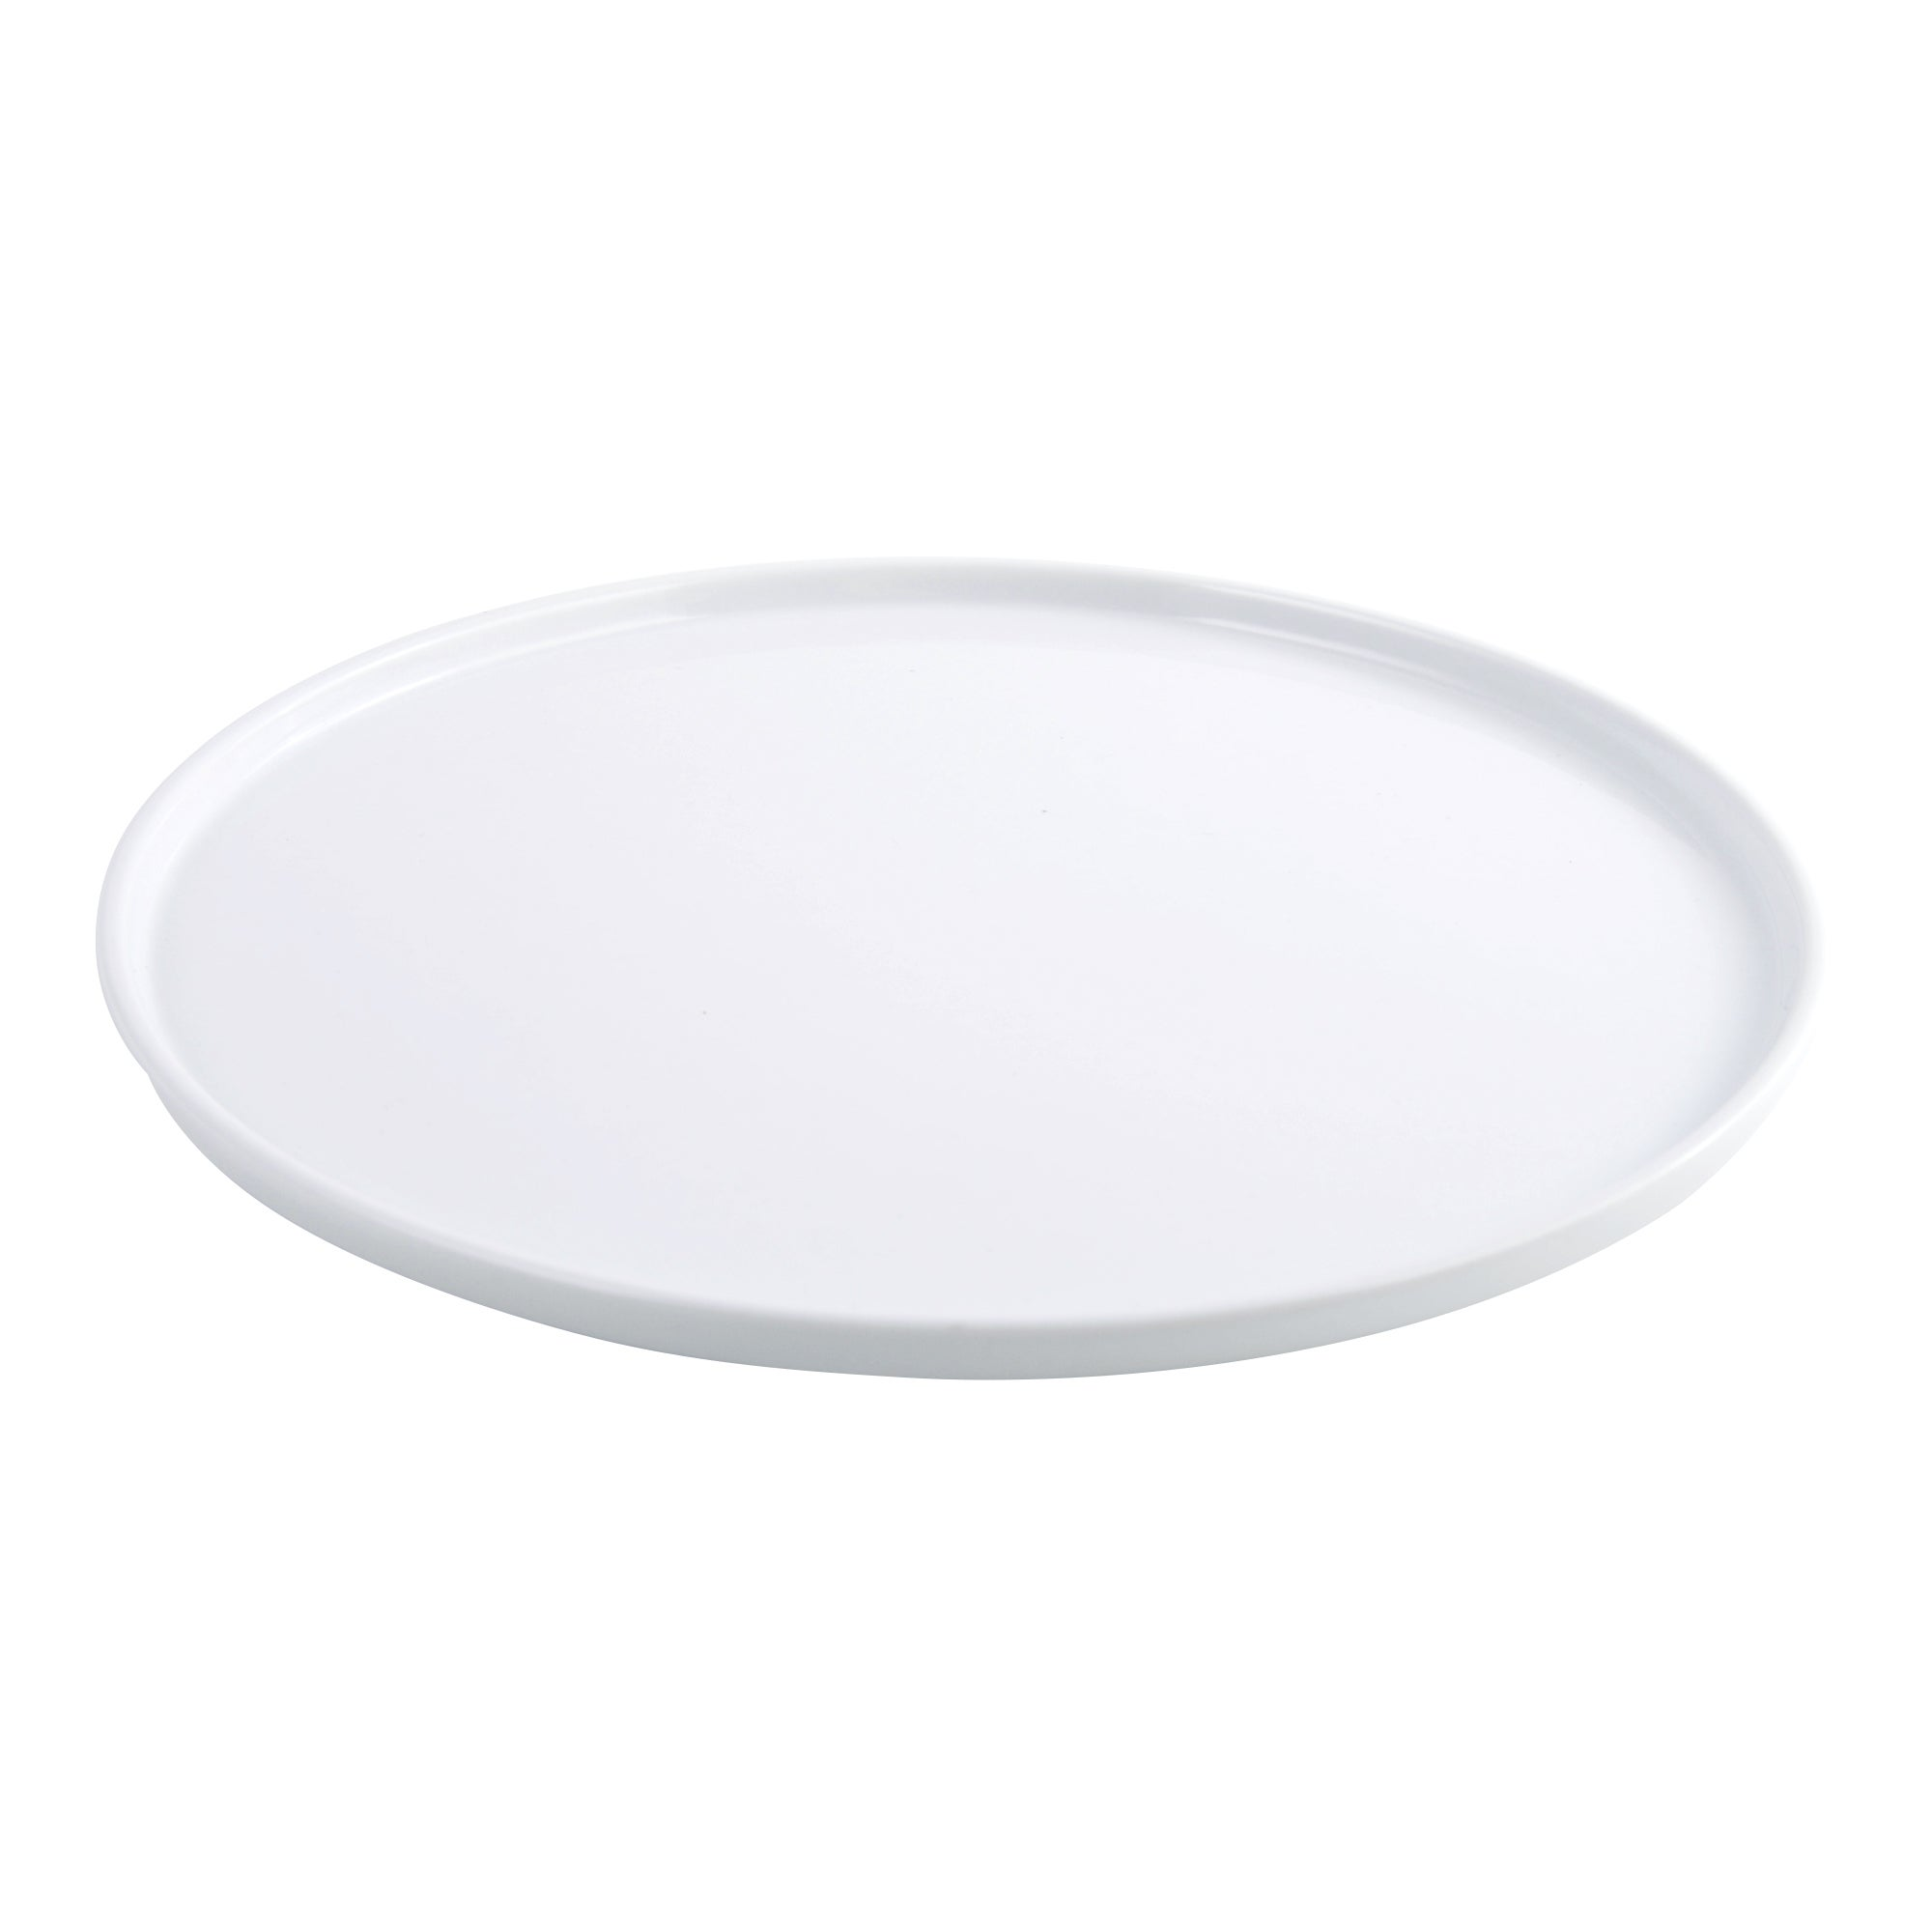 Purity Collection Pizza Plate